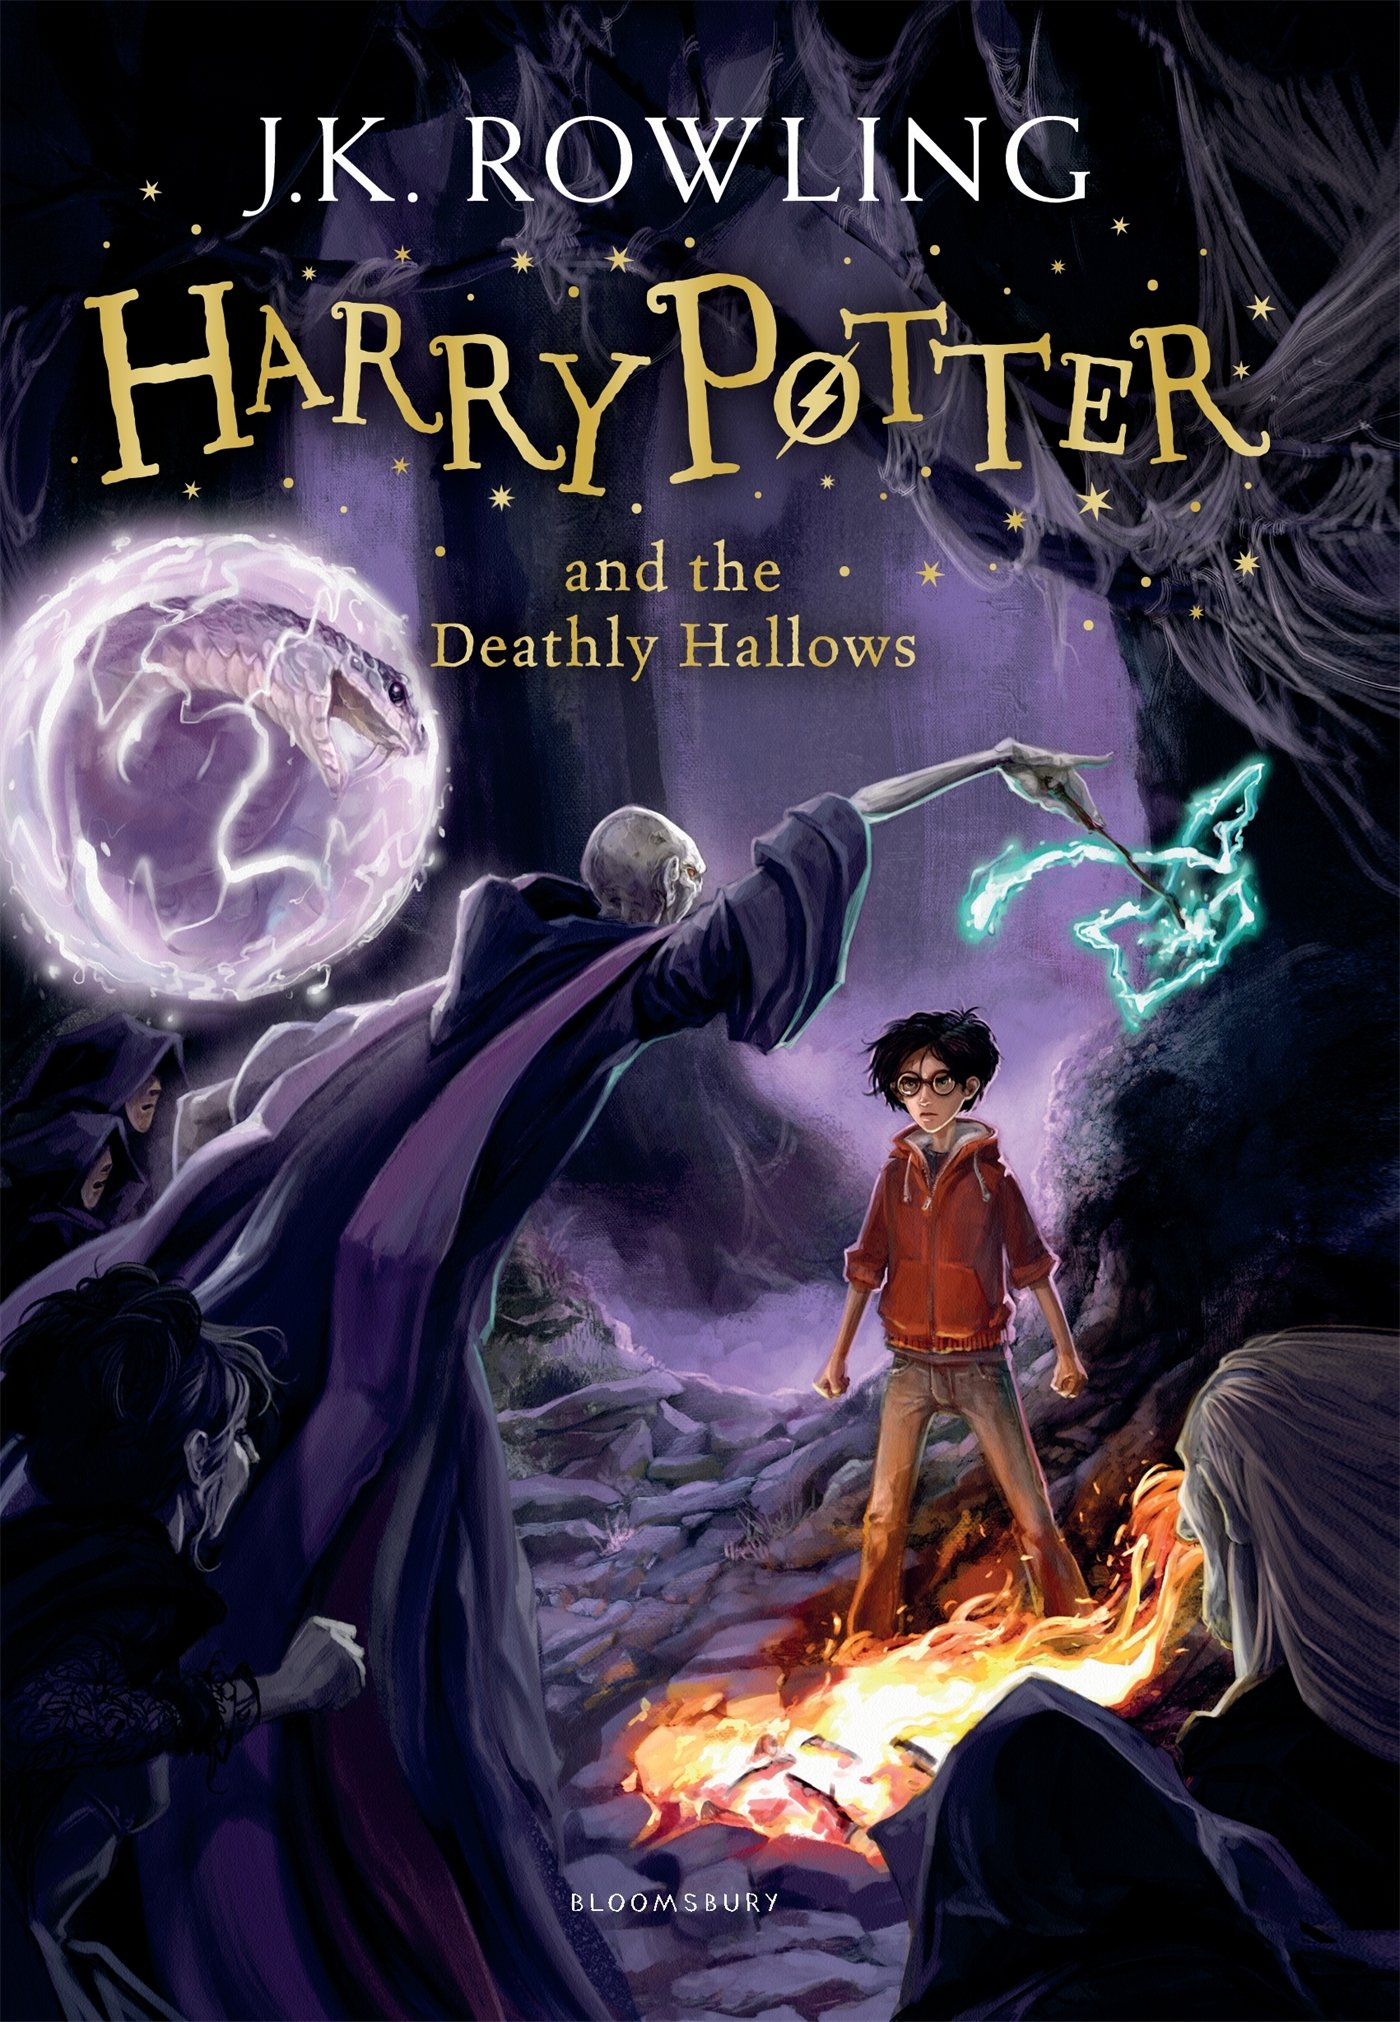 Resultado de imagen para harry potter and the deathly hallows book